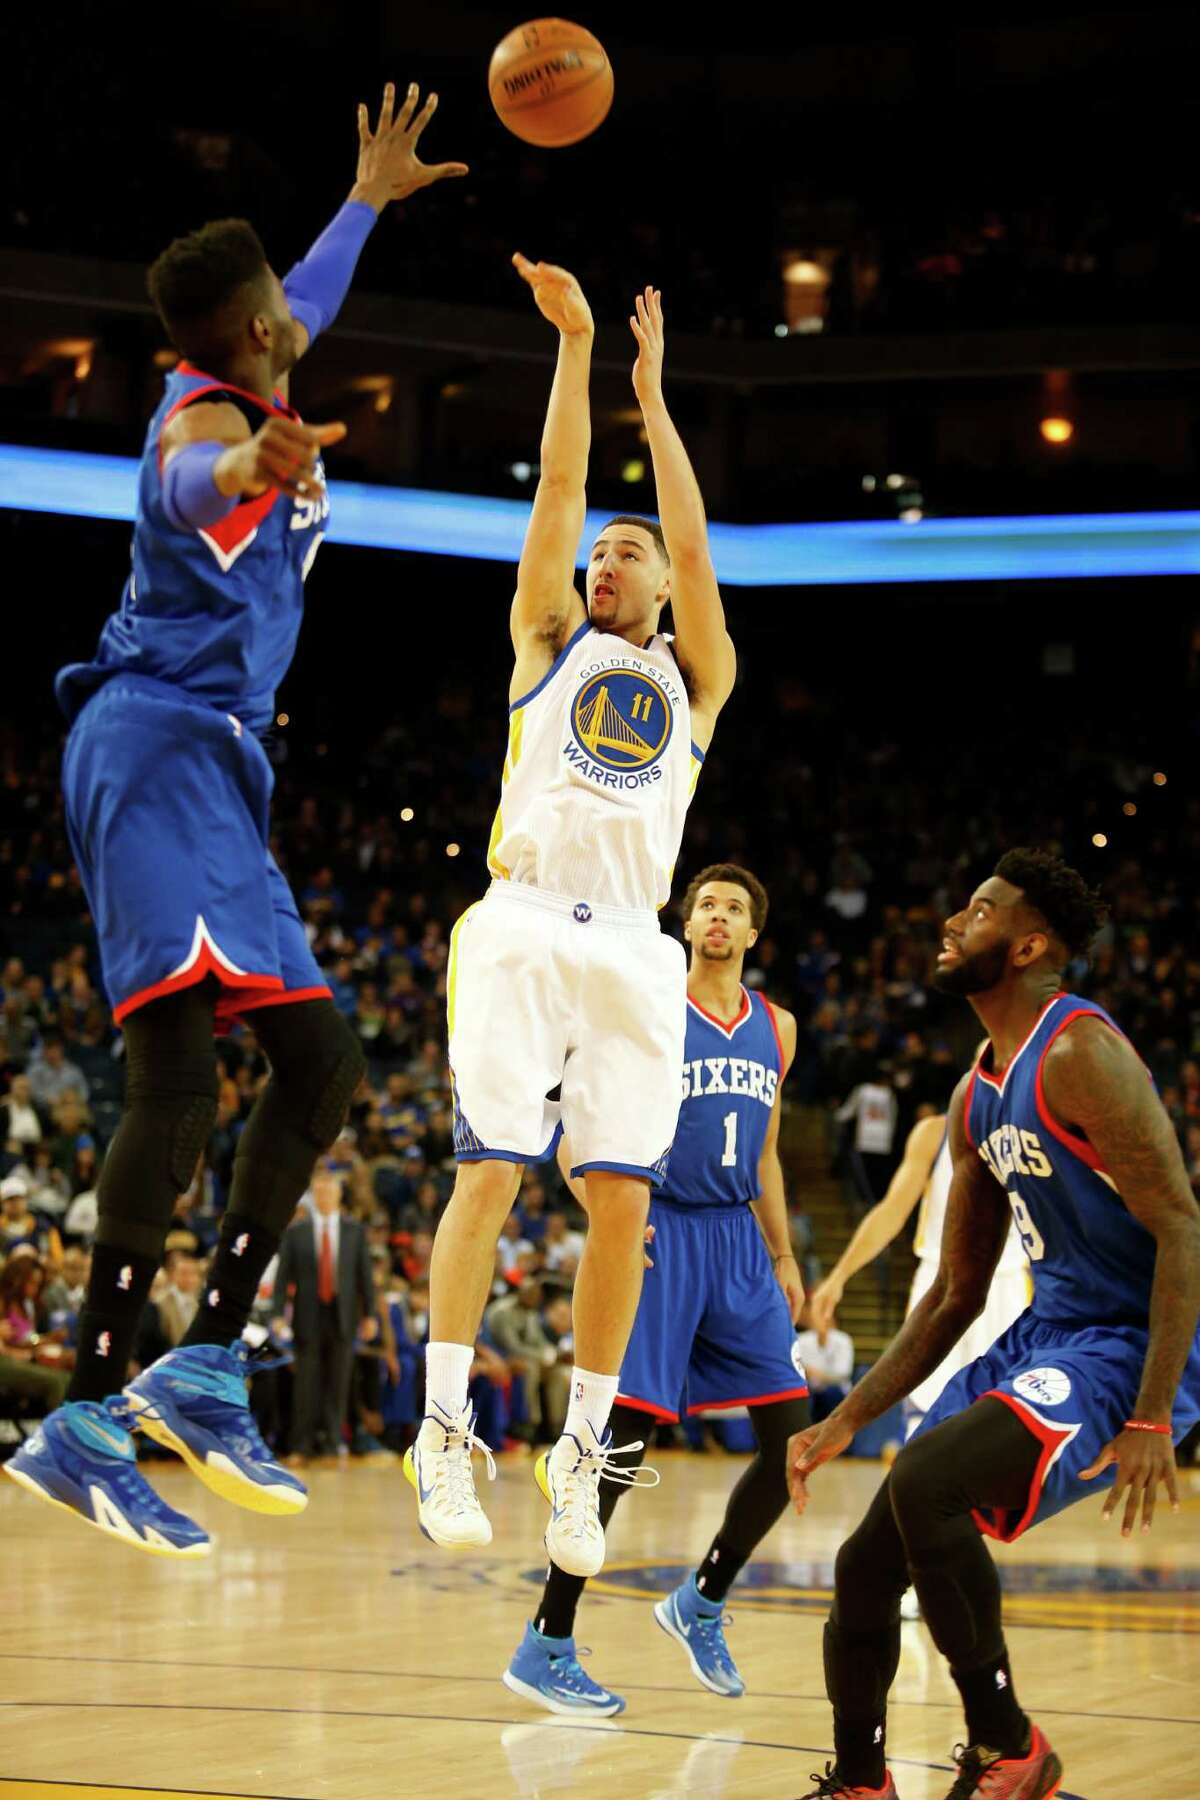 Warriors guard Klay Thompson, in his fourth NBA campaign, is having the best shooting season of his career. But his all-around game is what is wowing former All-Stars and NBA insiders.